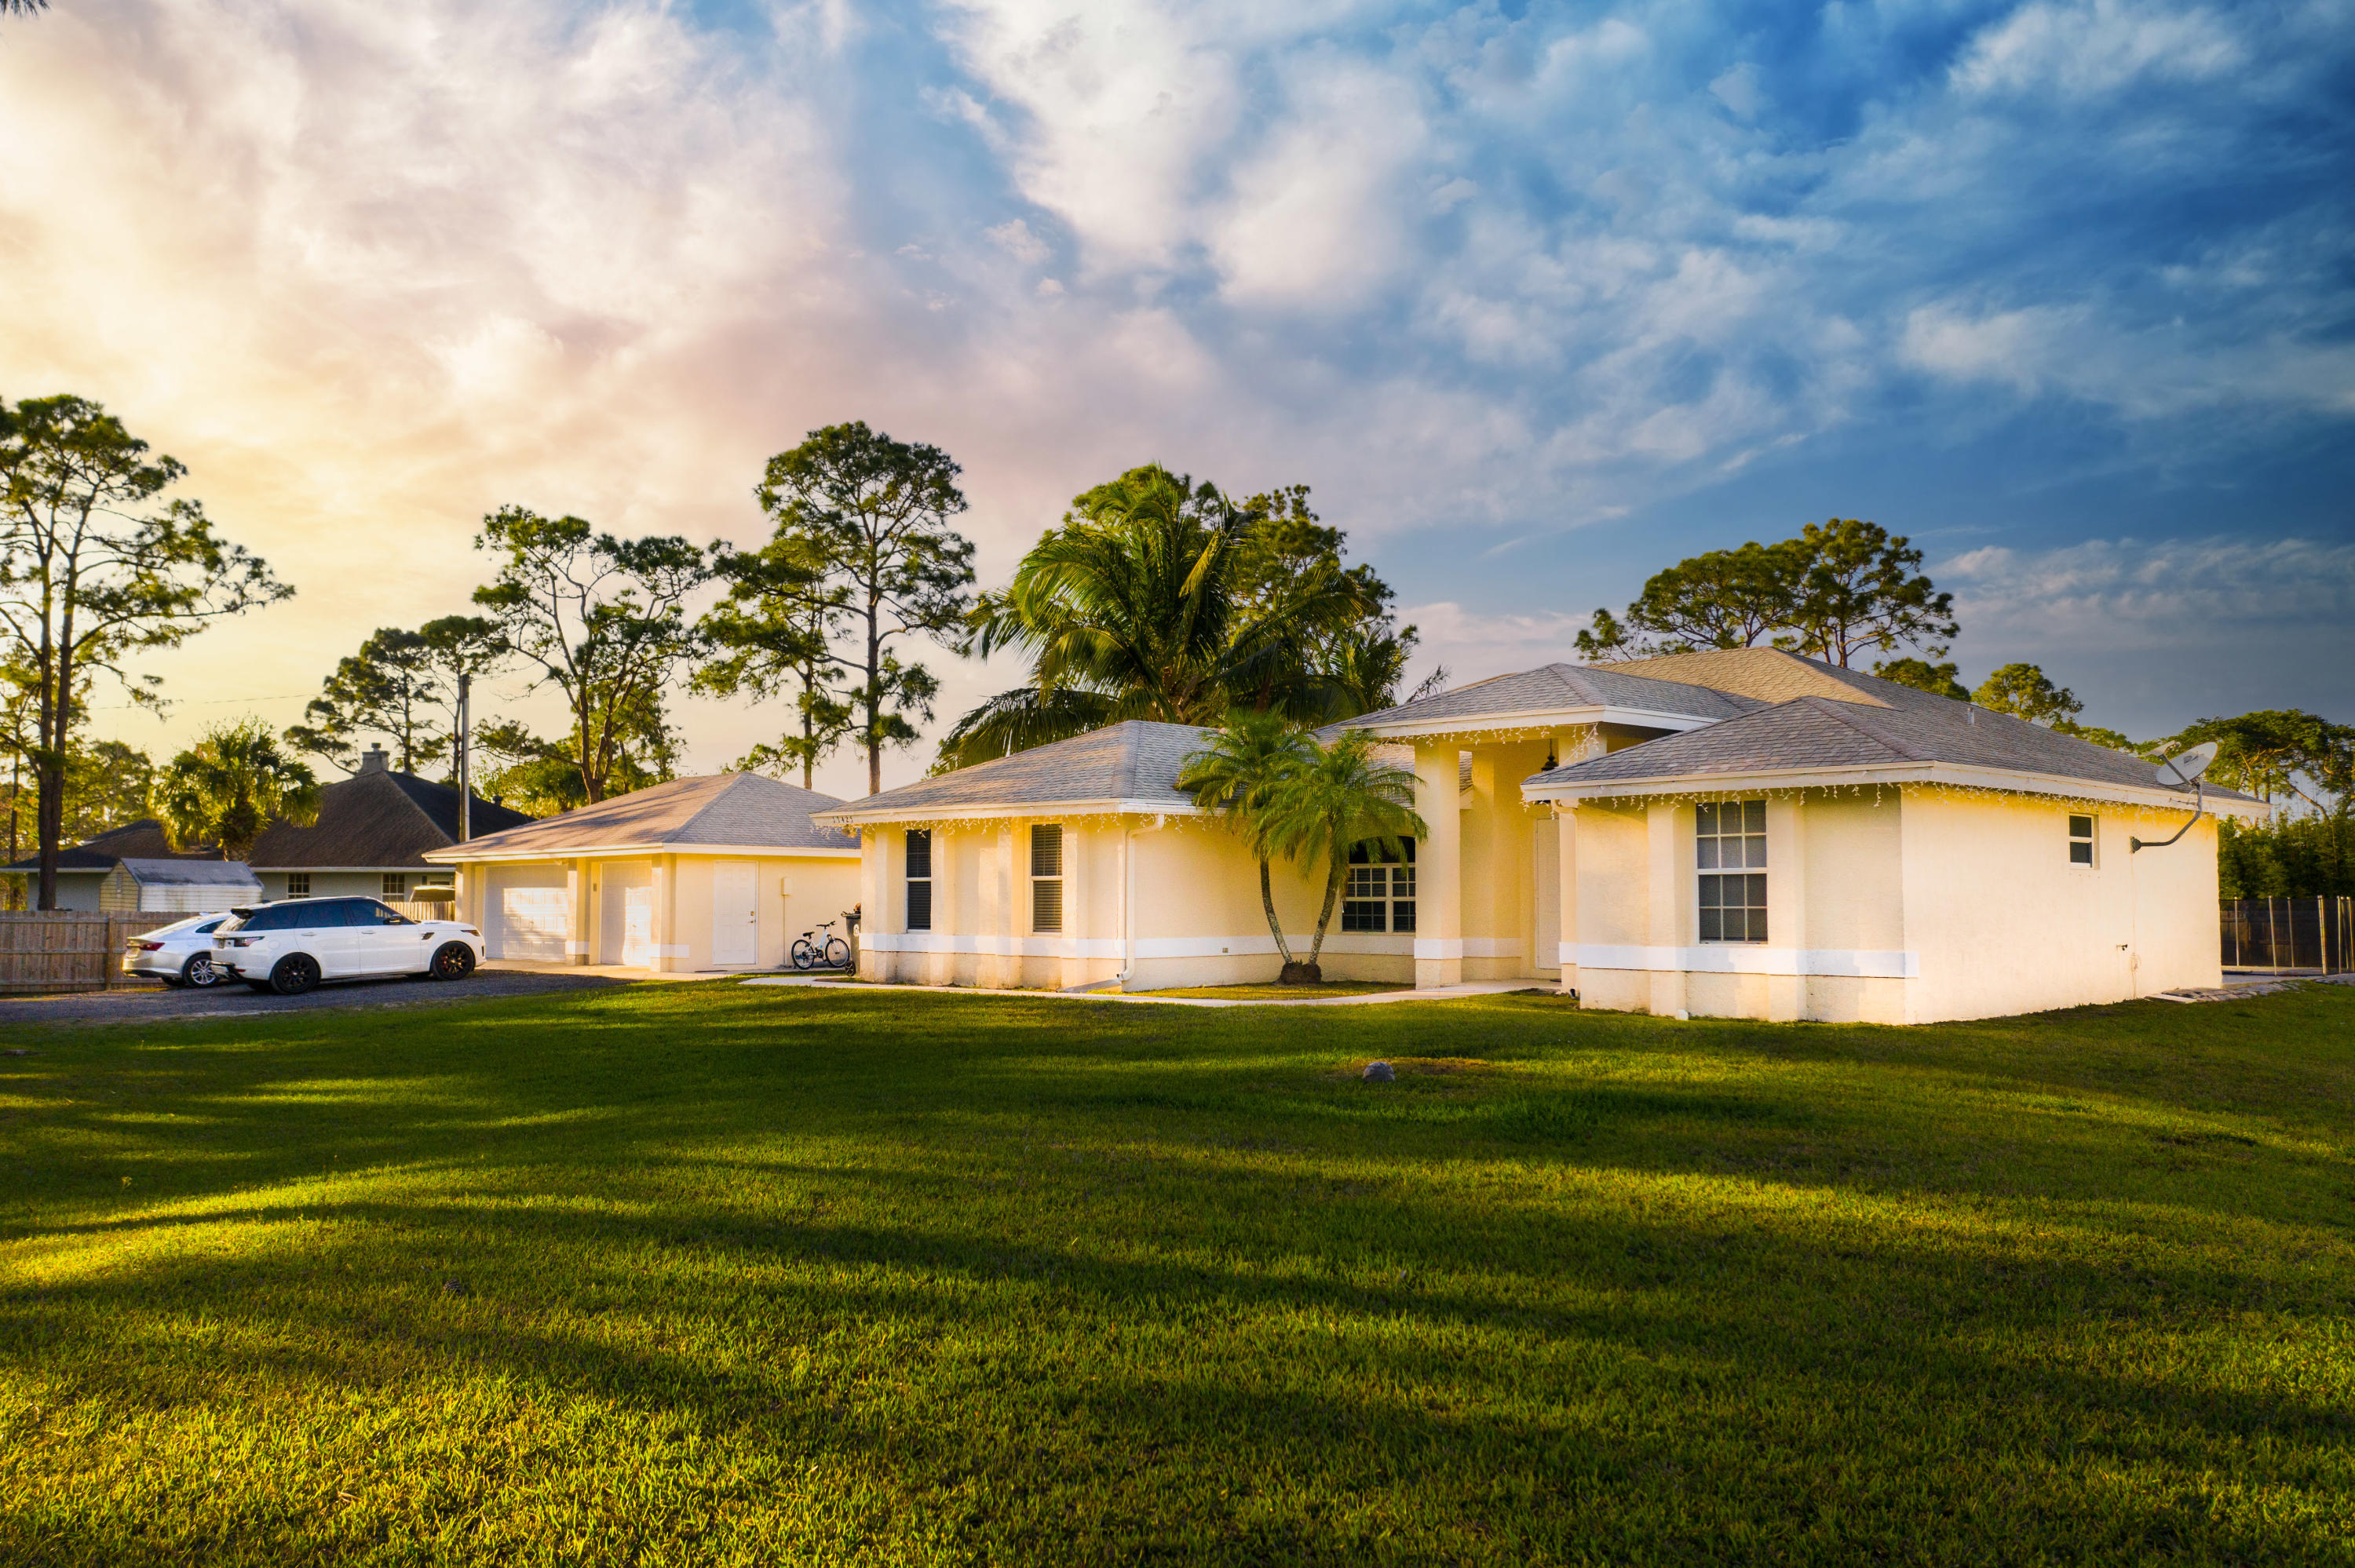 Home for sale in 27158 / 528 West Palm Beach Florida